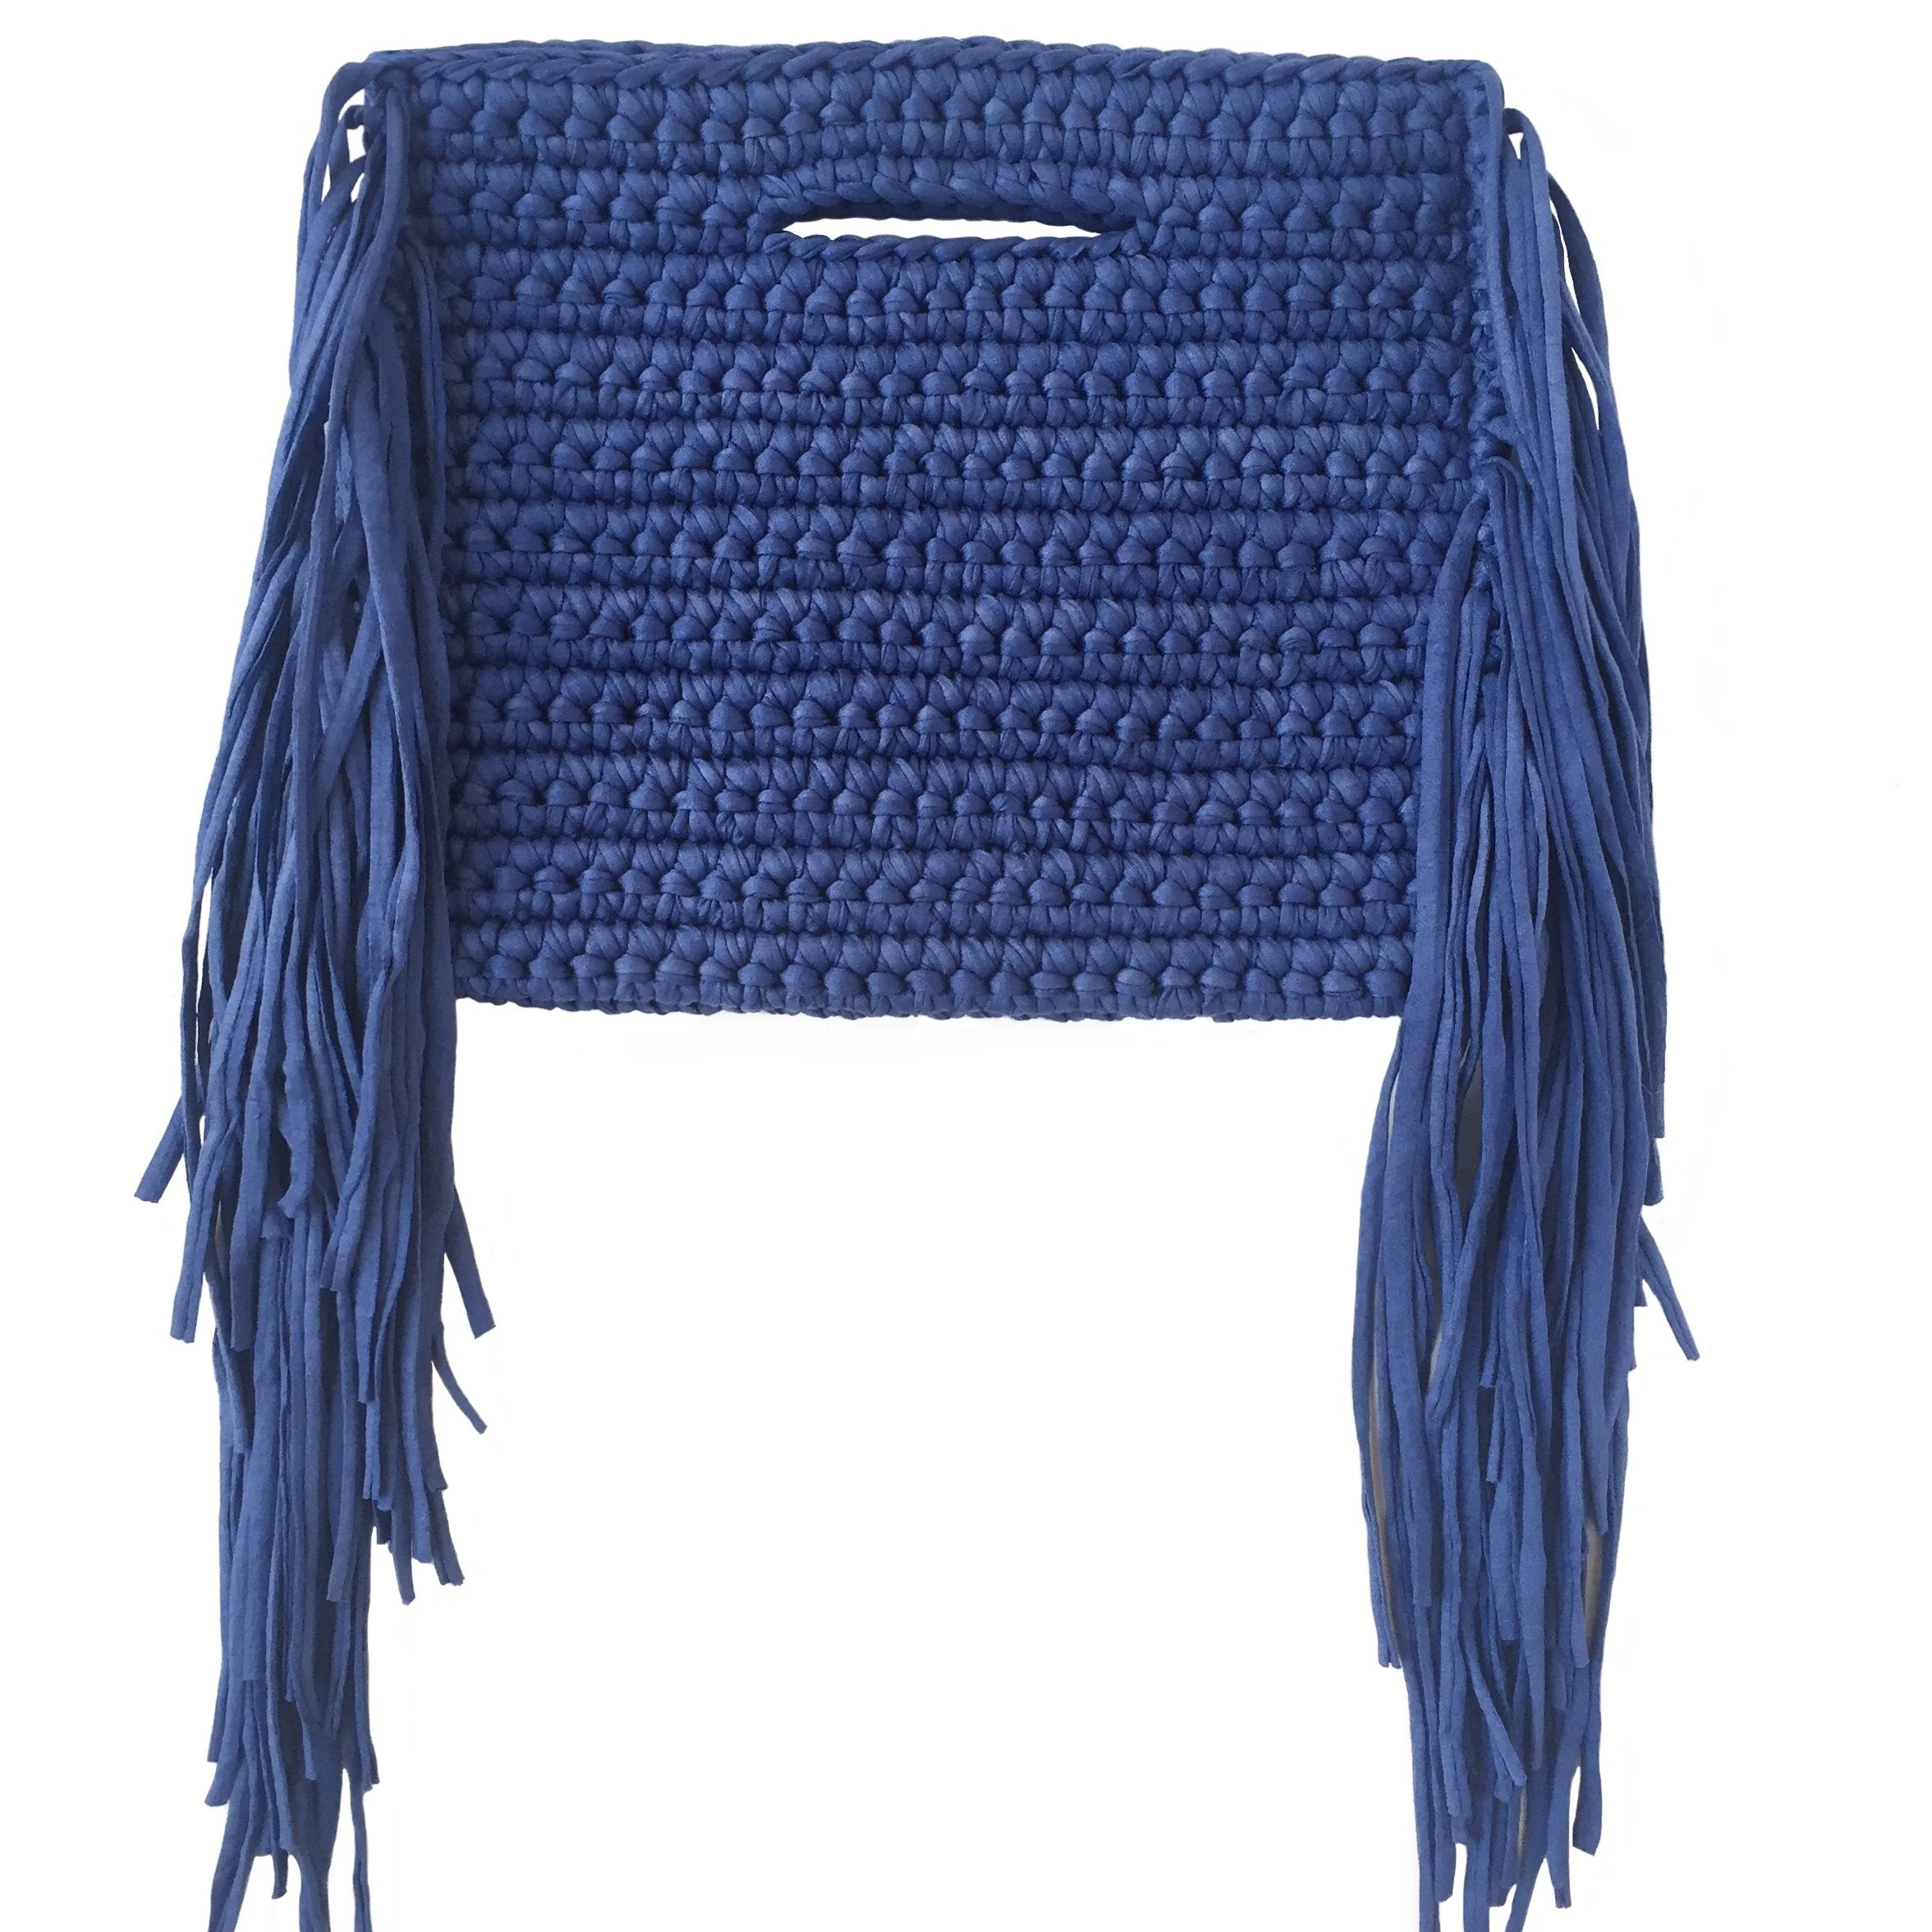 Binge Knitting Clutch Fringes Sides